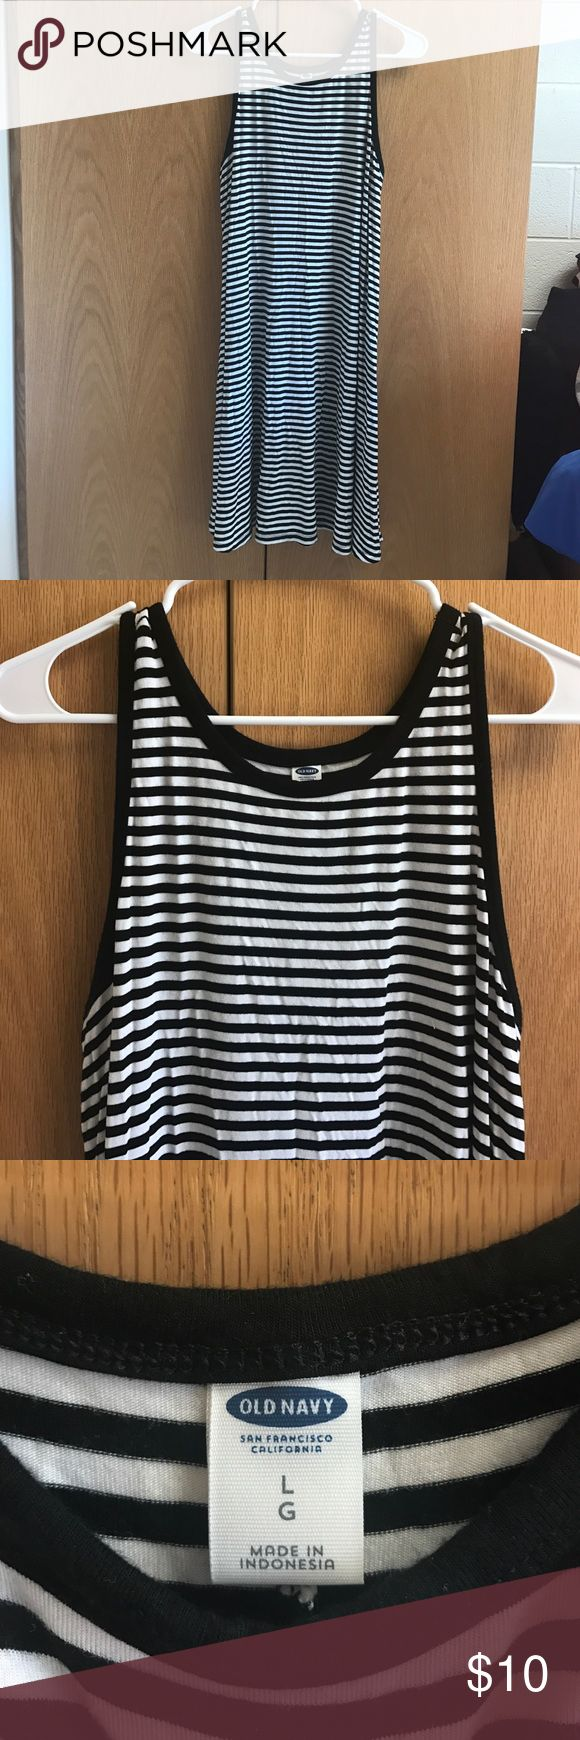 OLD NAVY STRIPED DRESS Old navy striped Tshirt dress. Flowy and perfect for spring and summer. Only worn once. BUNDLE AND SAVE!!! Old Navy Dresses